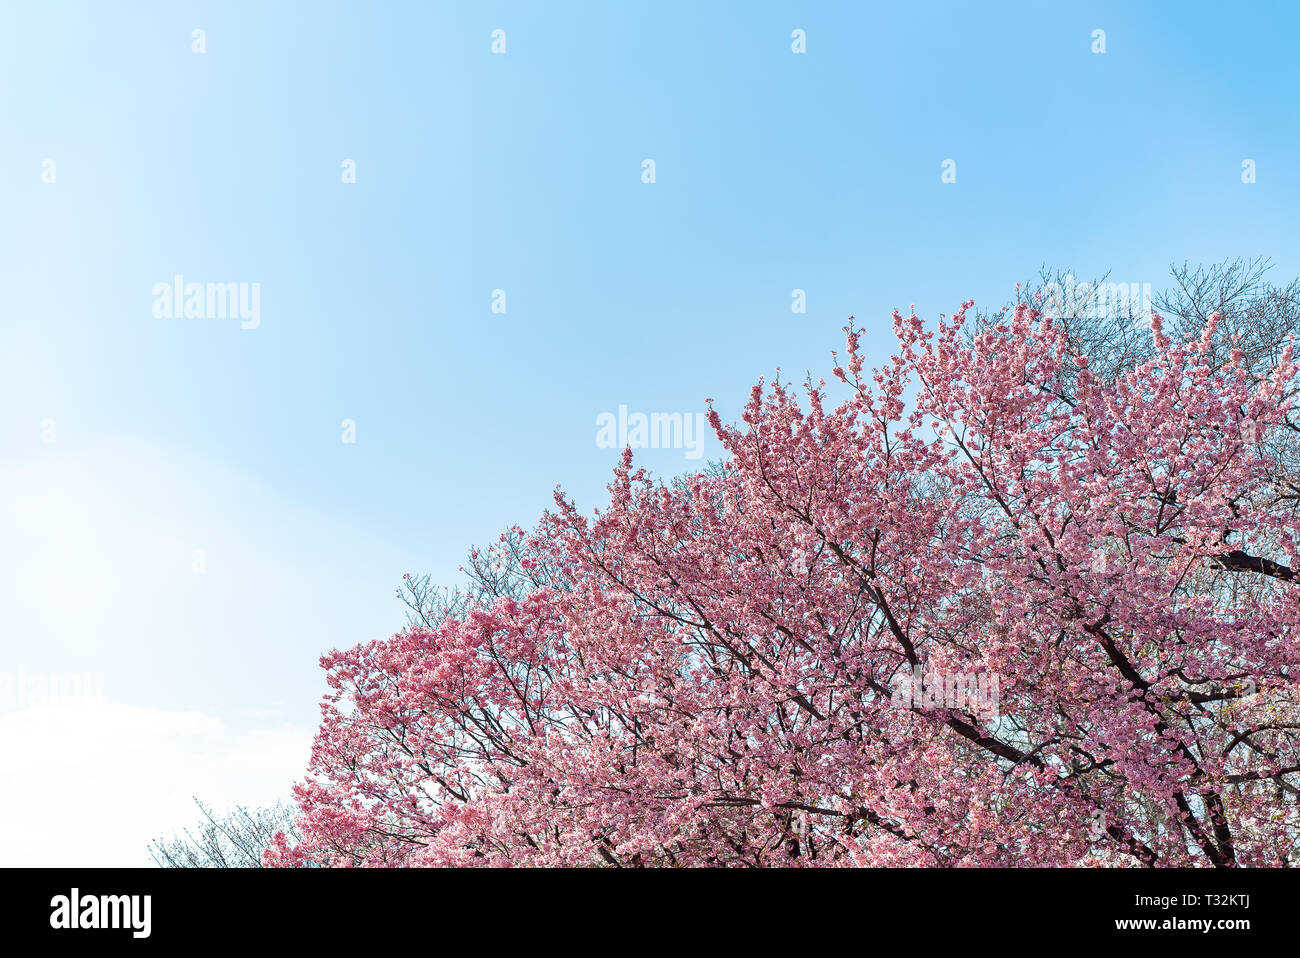 Cherry blossom (sakura) with birds under the blue sky in the Shinjuku Gyo-en Park in Tokyo of Japan. A good place for vocation in spring. Stock Photo